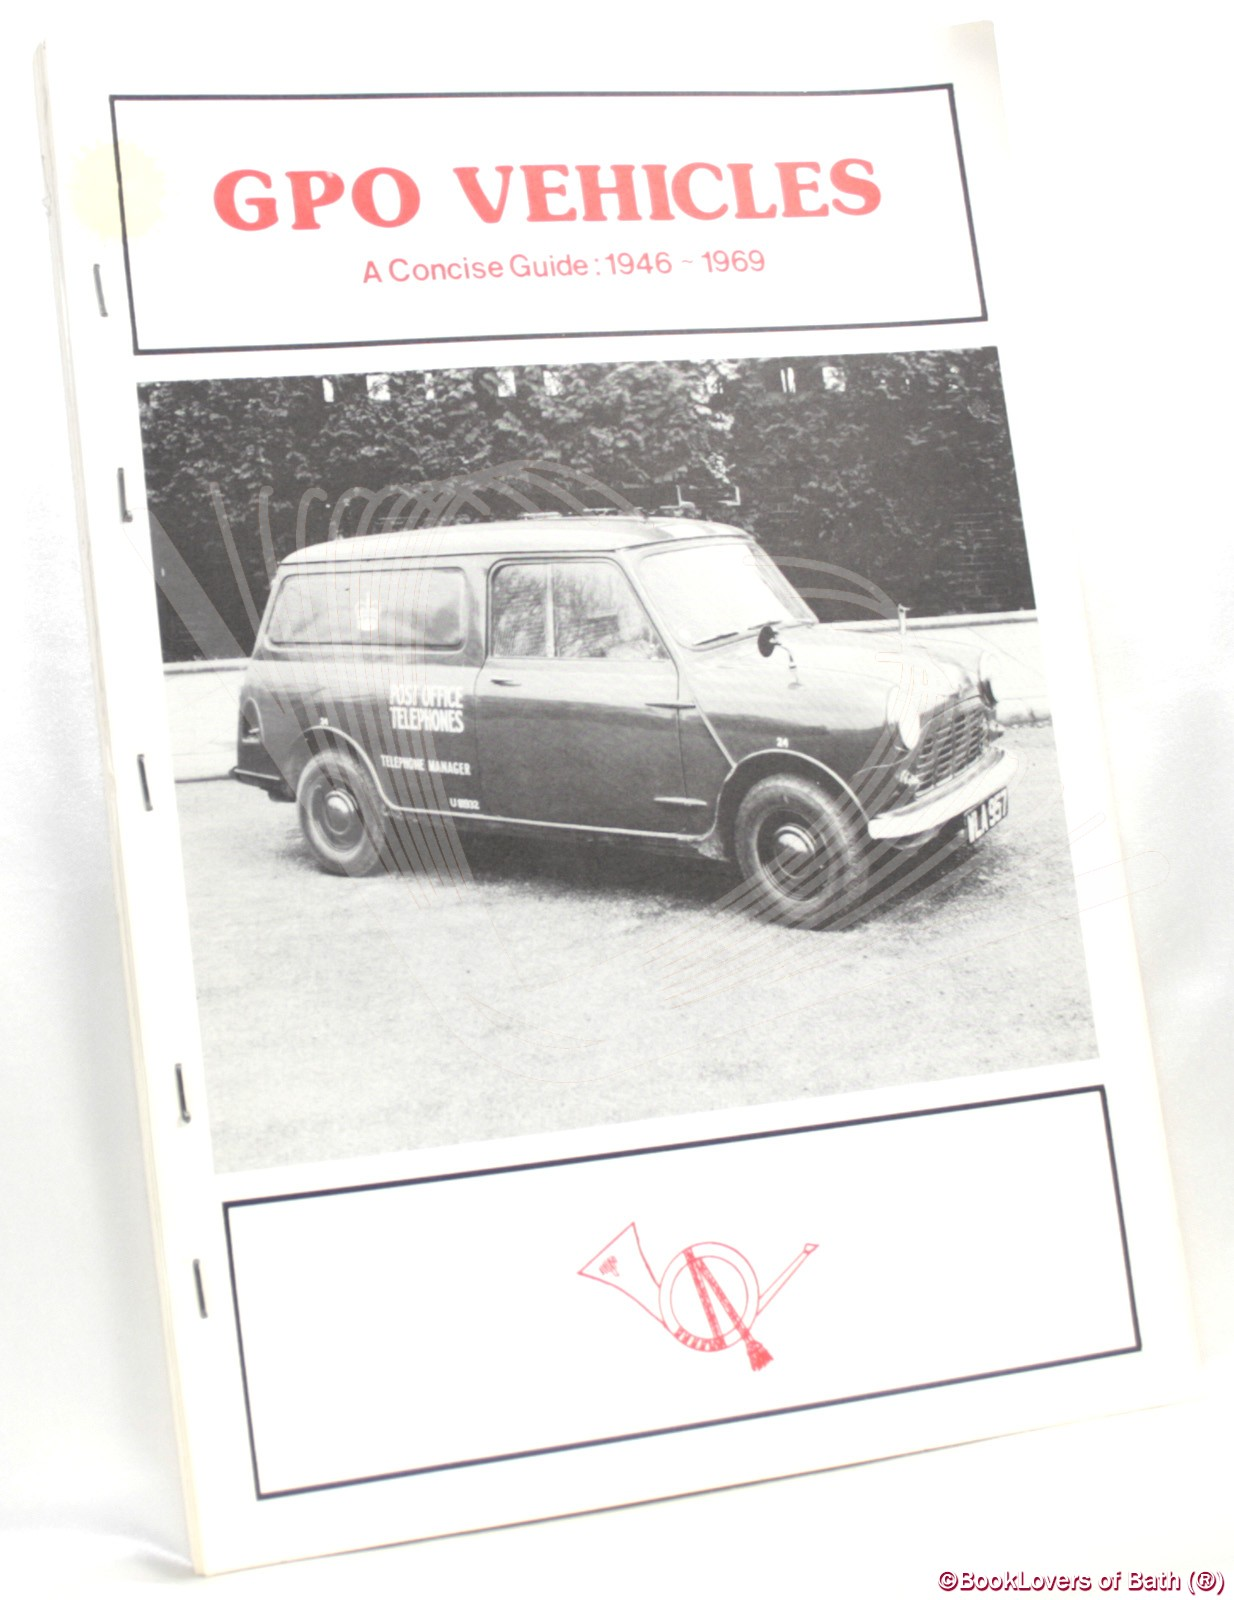 GPO Vehicles: A Concise Guide to Vehicle Numbering in the Fleet of the General Post Office 1946 - 1969 - Anon.